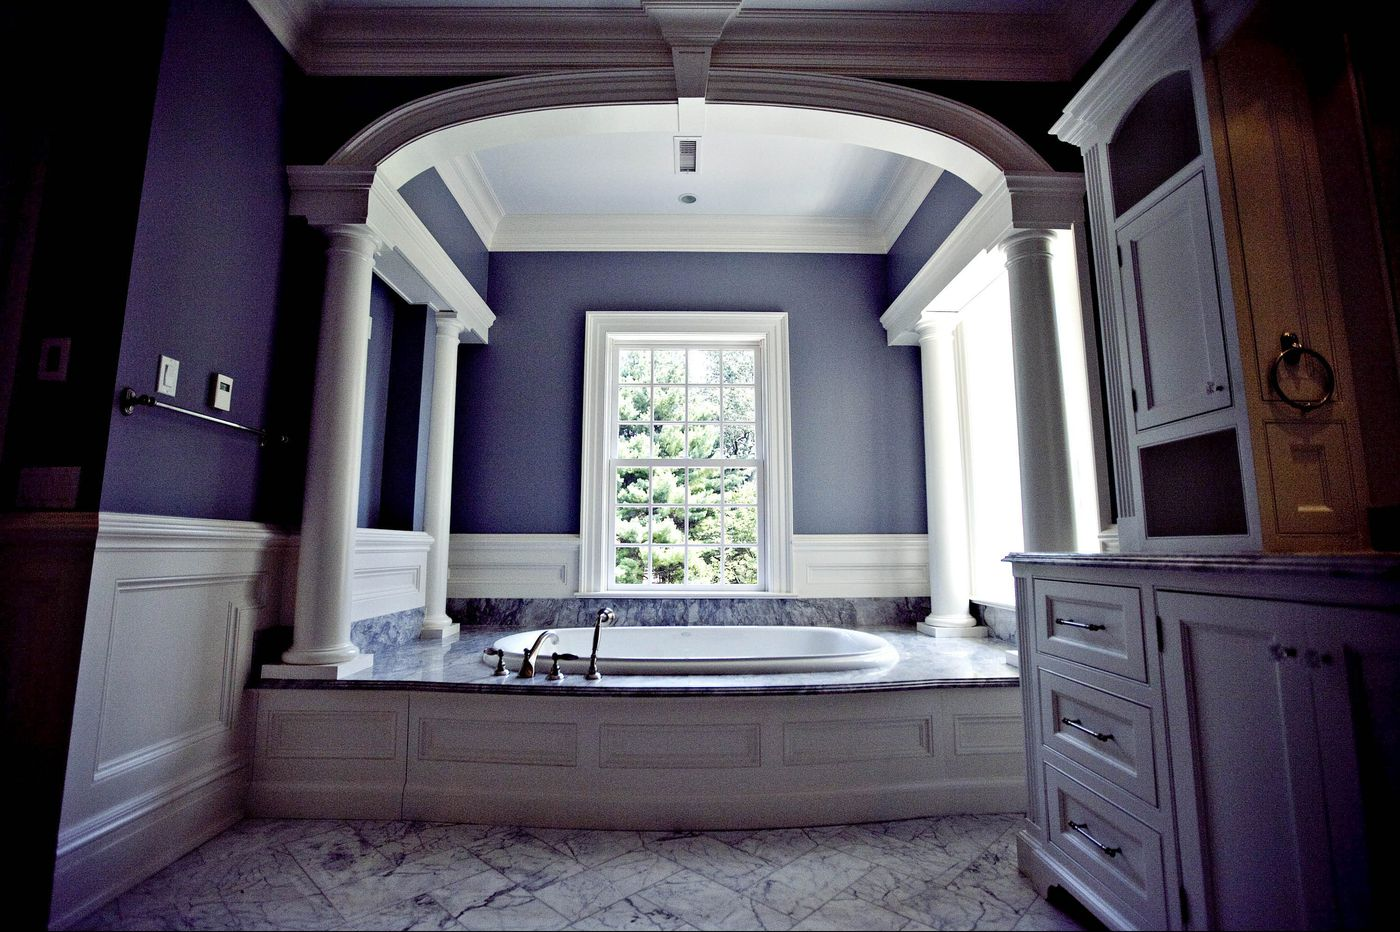 Is a bathtub a necessity or a luxury? For some, the answer could be changing